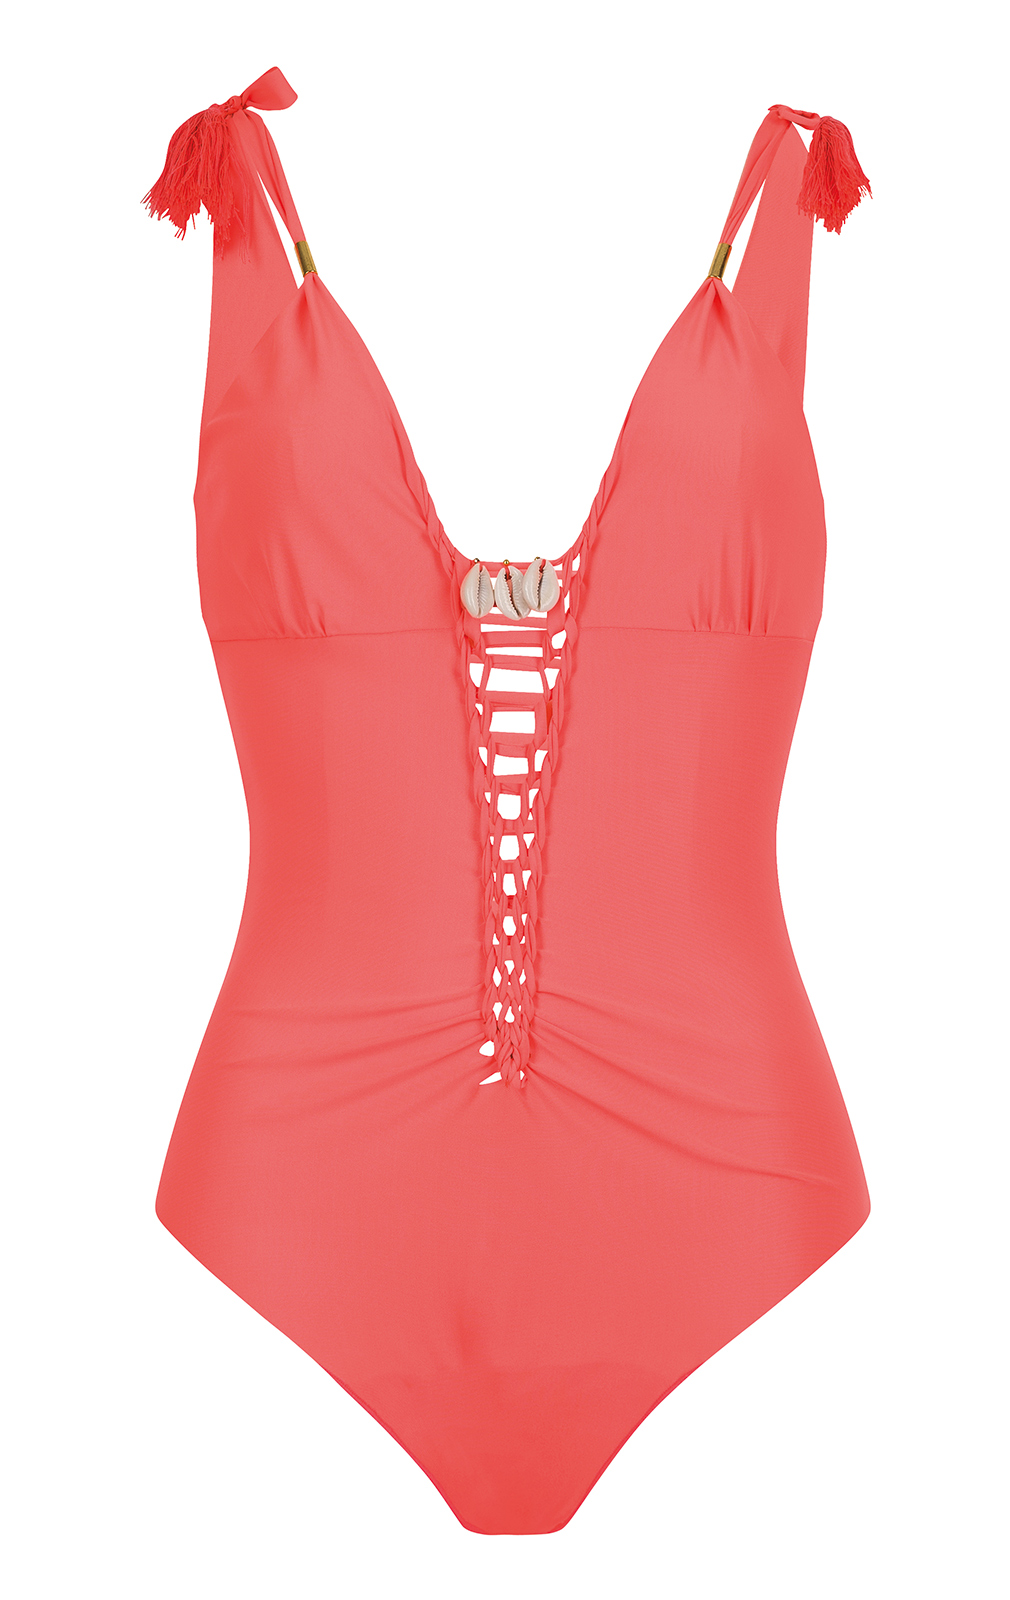 Fluorescent Red One-piece Swimsuit With Dual Neckline ...